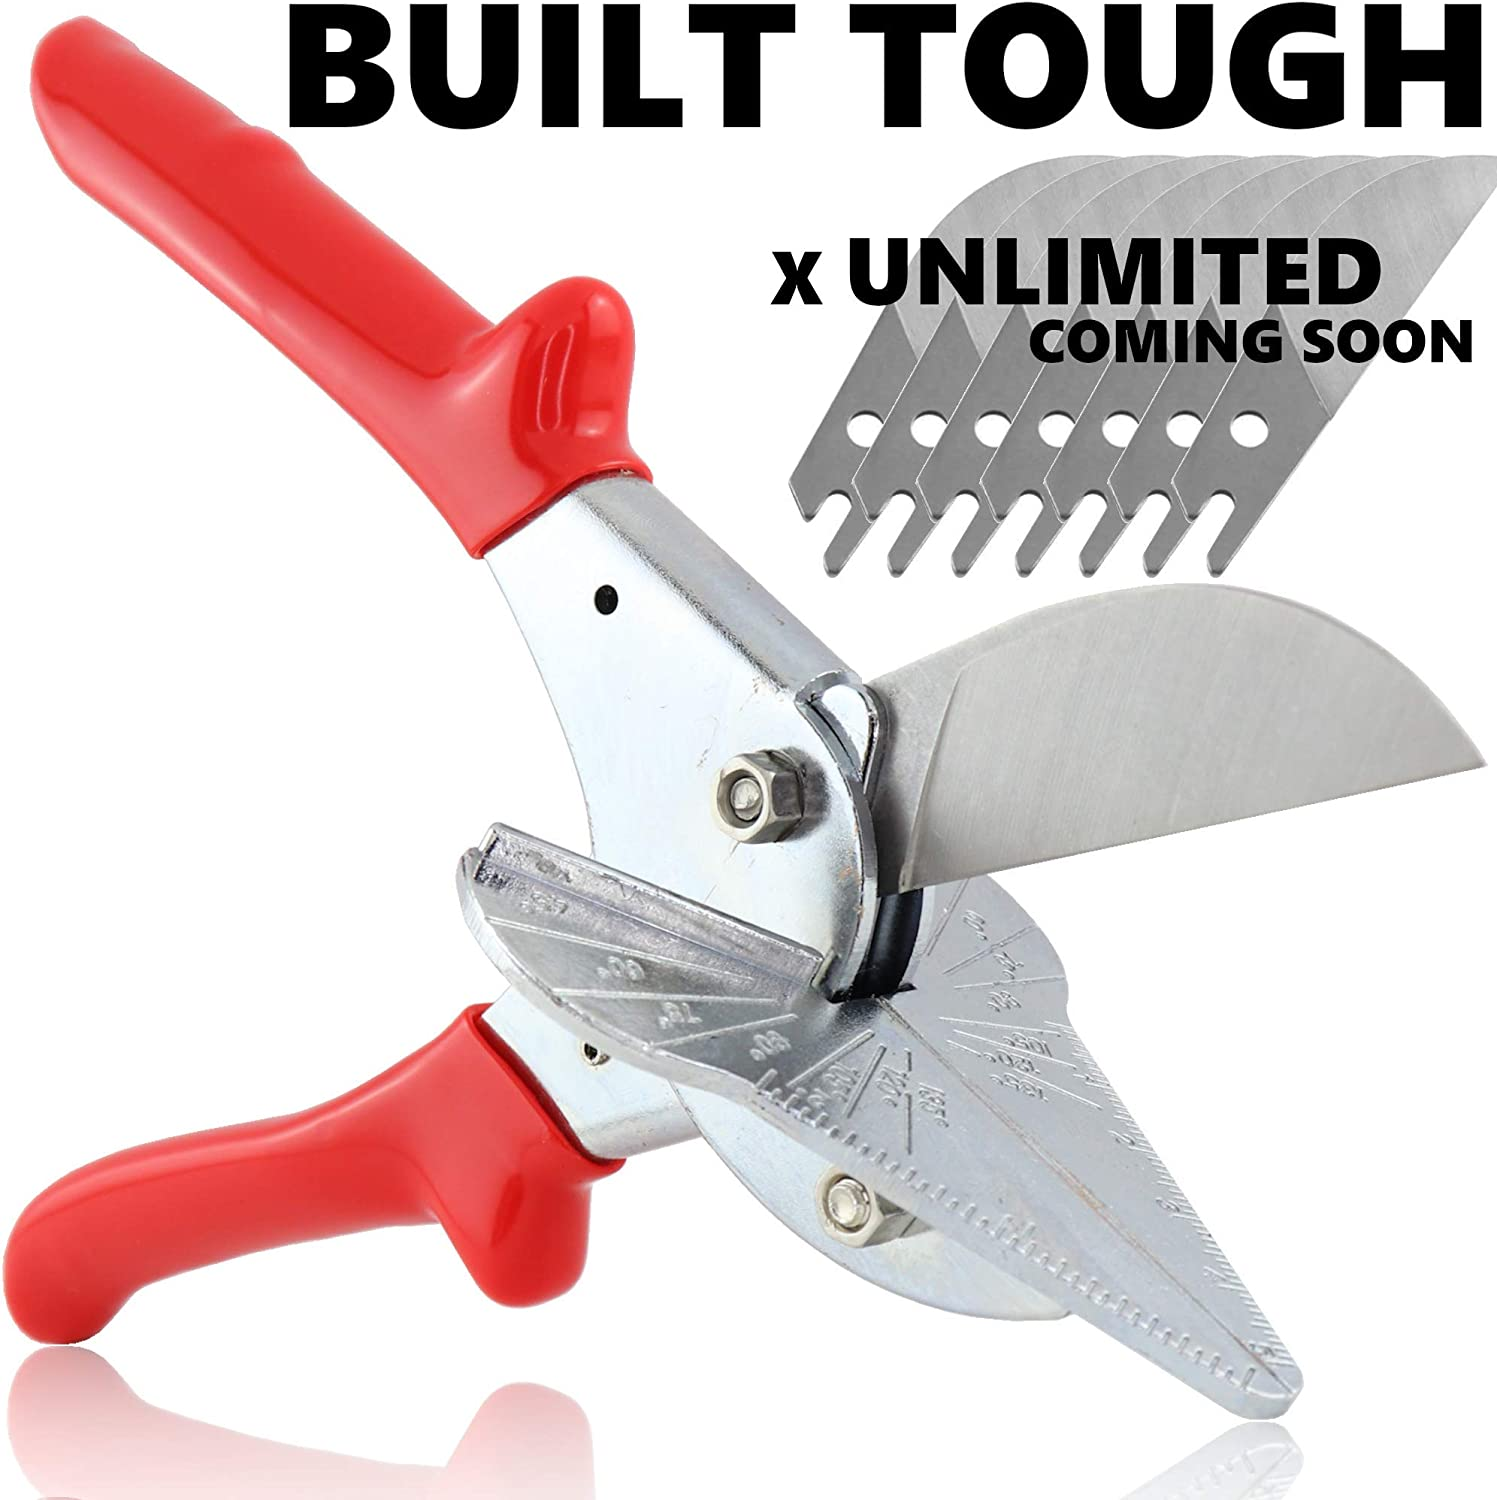 Multi Angle Miter Cutter|Hand Shear Multipurpose Tool|Cuts 45 to 135 Degrees|Stainless Steel with Rubber Handle /& Safety Lock